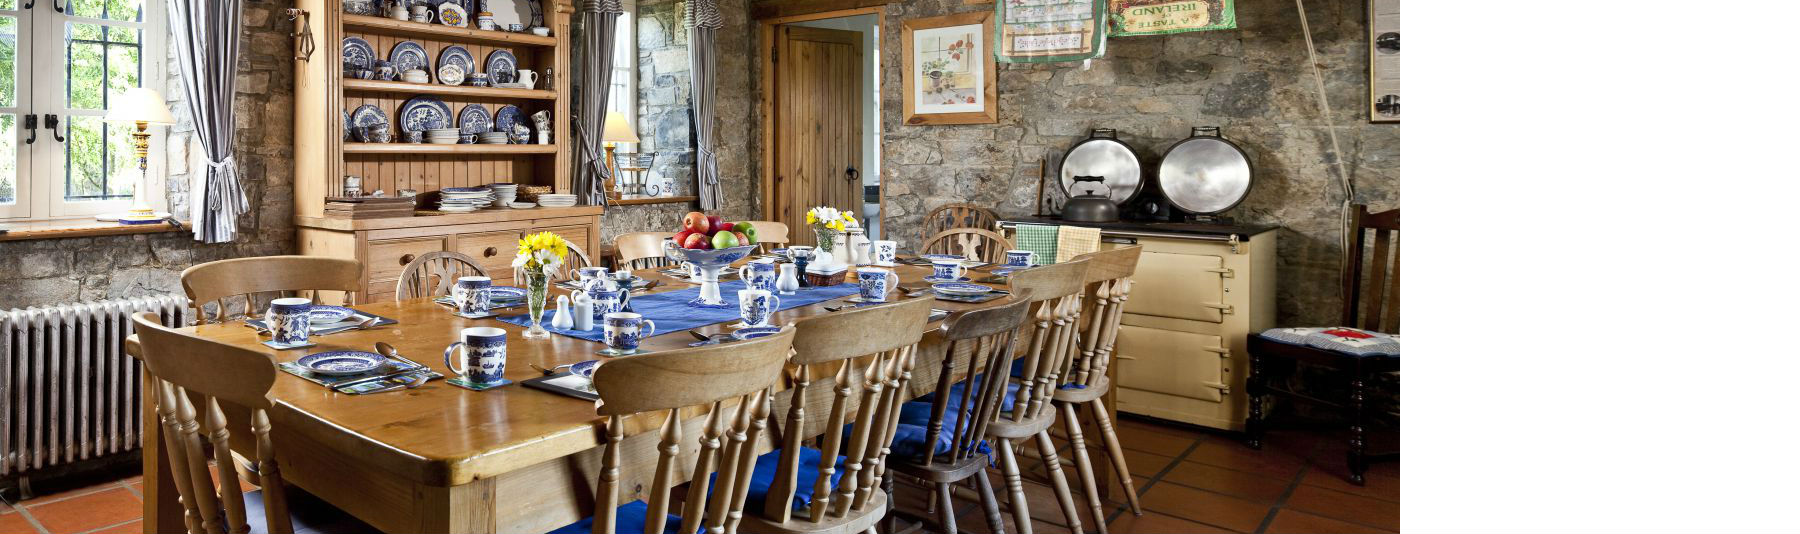 Traditional Irish Kitchen - Castle holiday Ireland